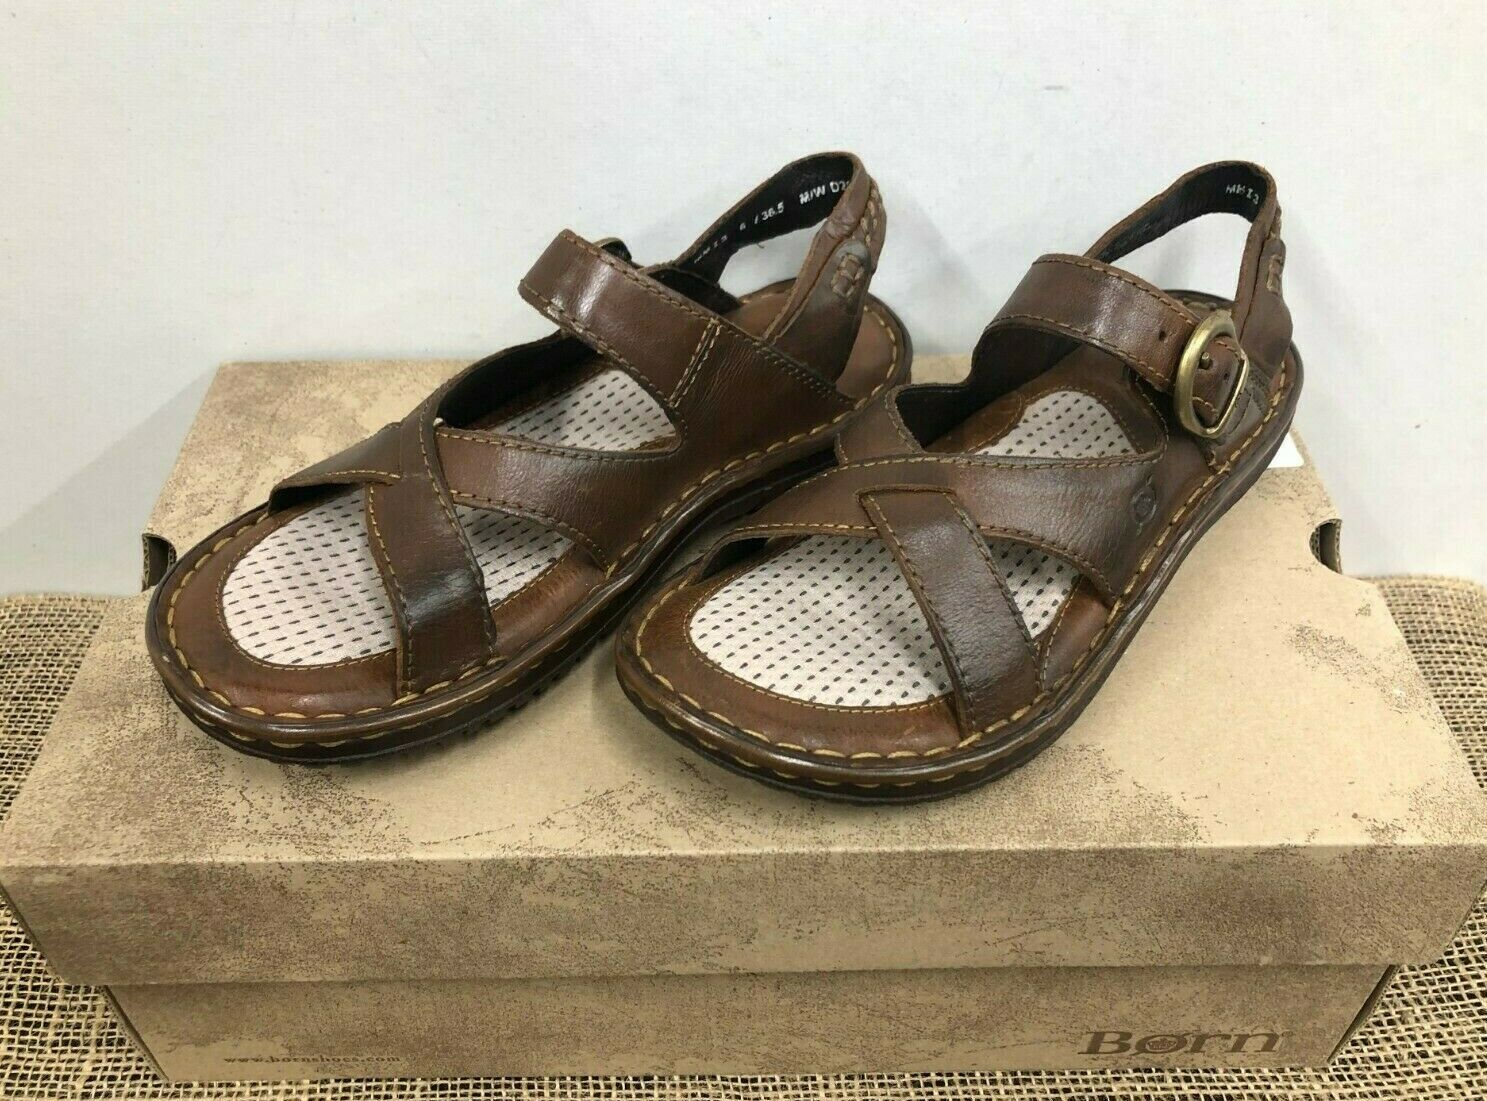 4c61f3279 ... UPC 887316239986 product image for Born Trinidad Sandals